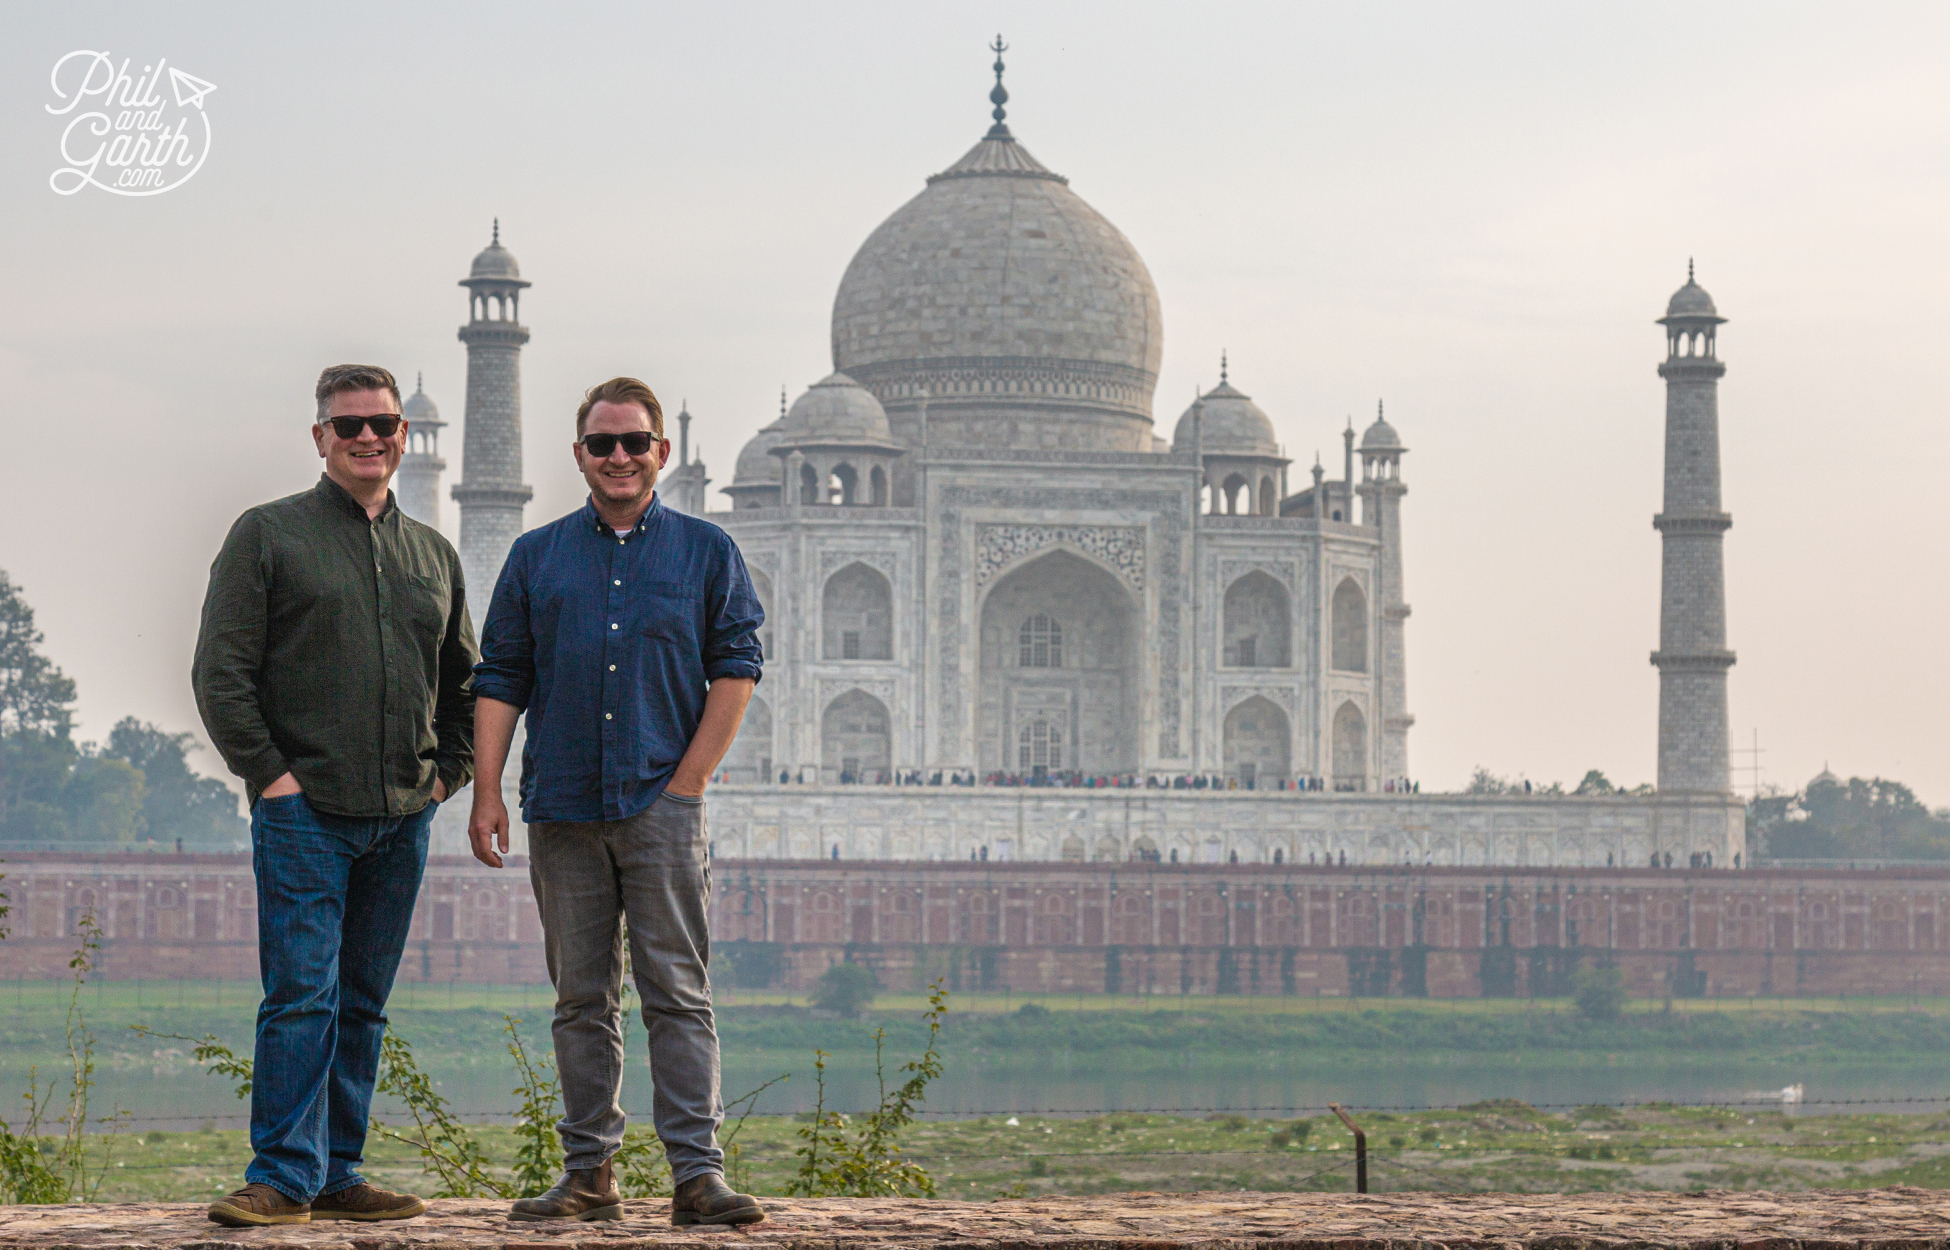 Mehtab Bagh is the perfect spot for photos of the Taj Mahal without all the crowds